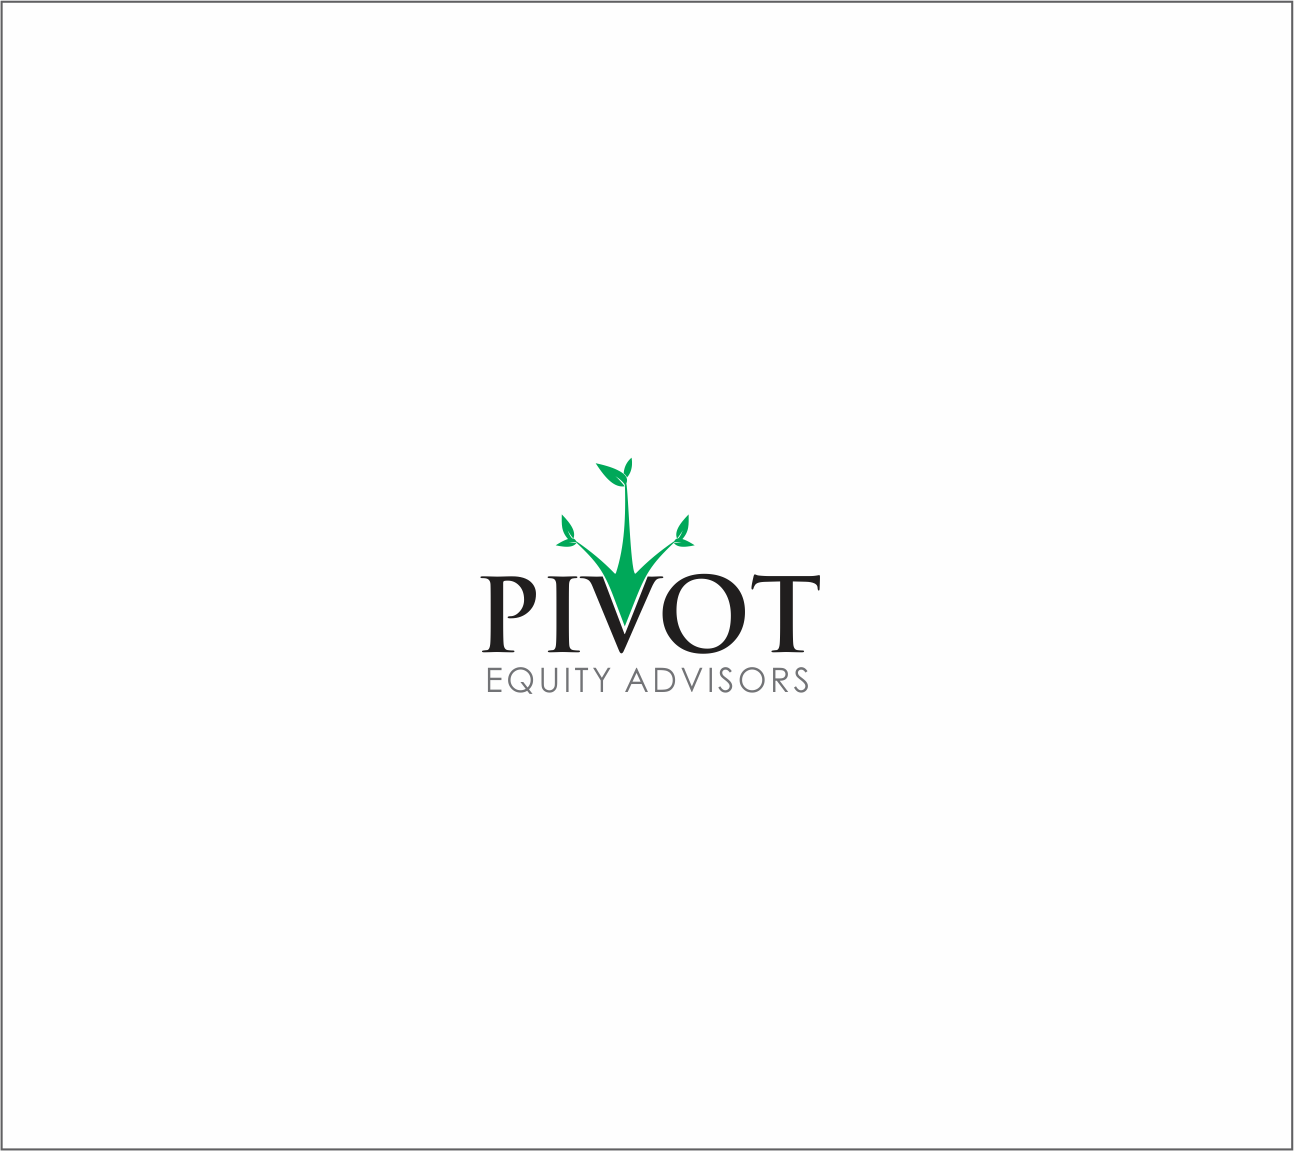 Logo Design by Armada Jamaluddin - Entry No. 27 in the Logo Design Contest Unique Logo Design Wanted for Pivot Equity Advisors.